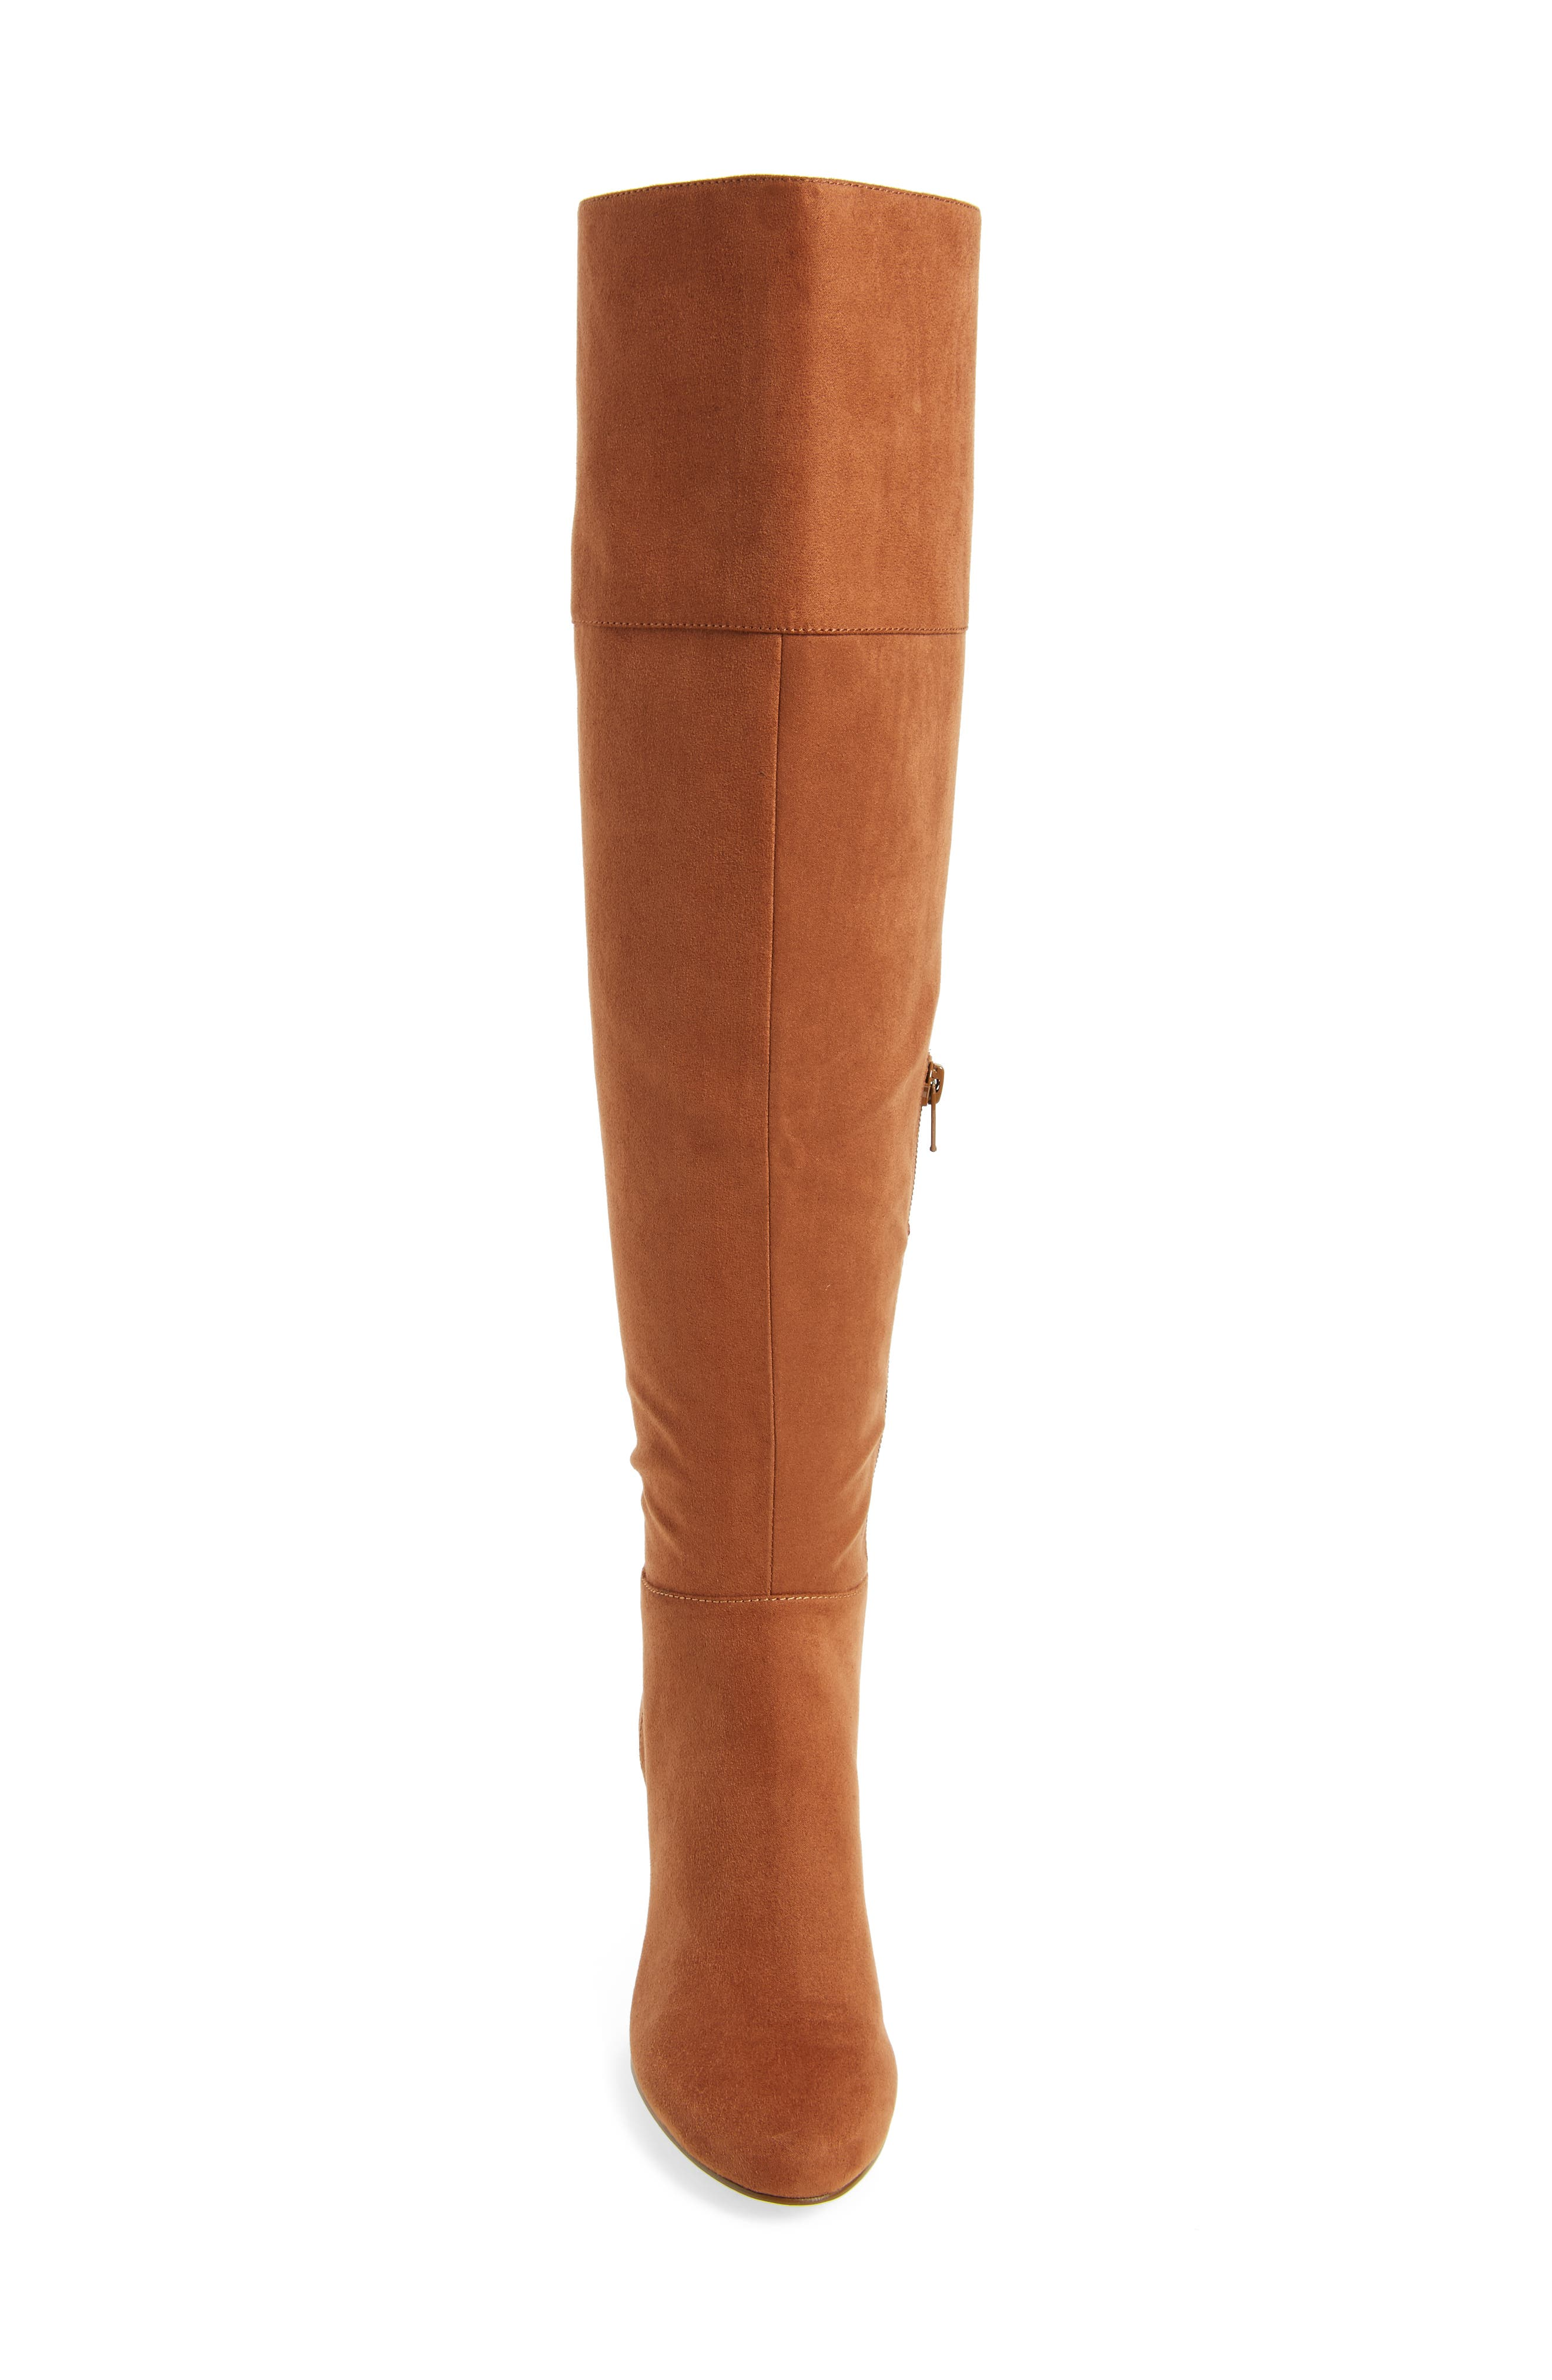 Telluride II Over the Knee Boot,                             Alternate thumbnail 4, color,                             Camel Suede